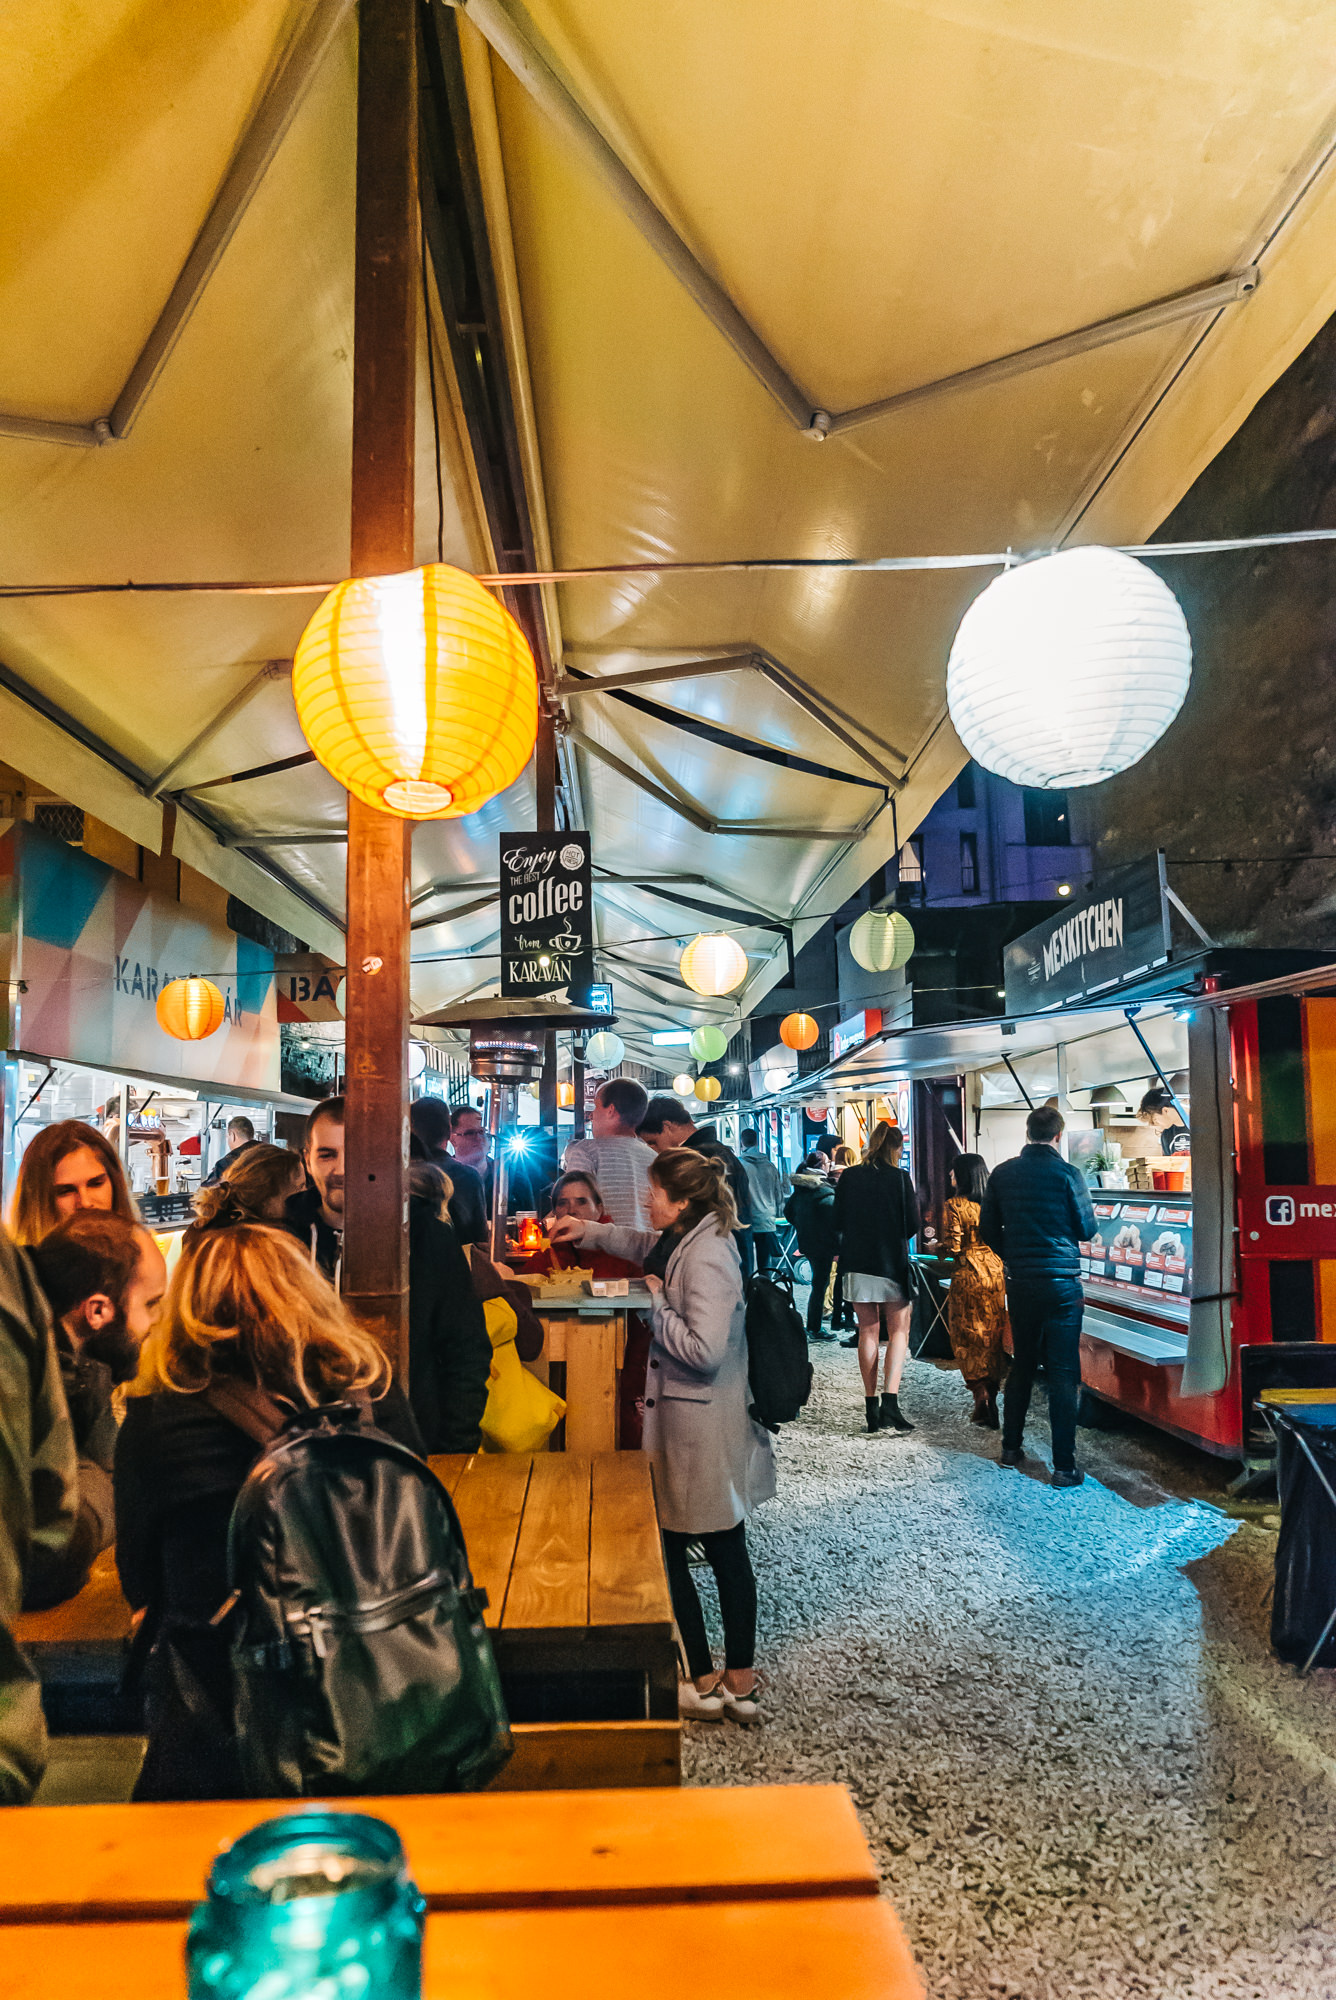 Karavan street food - Still lively at night